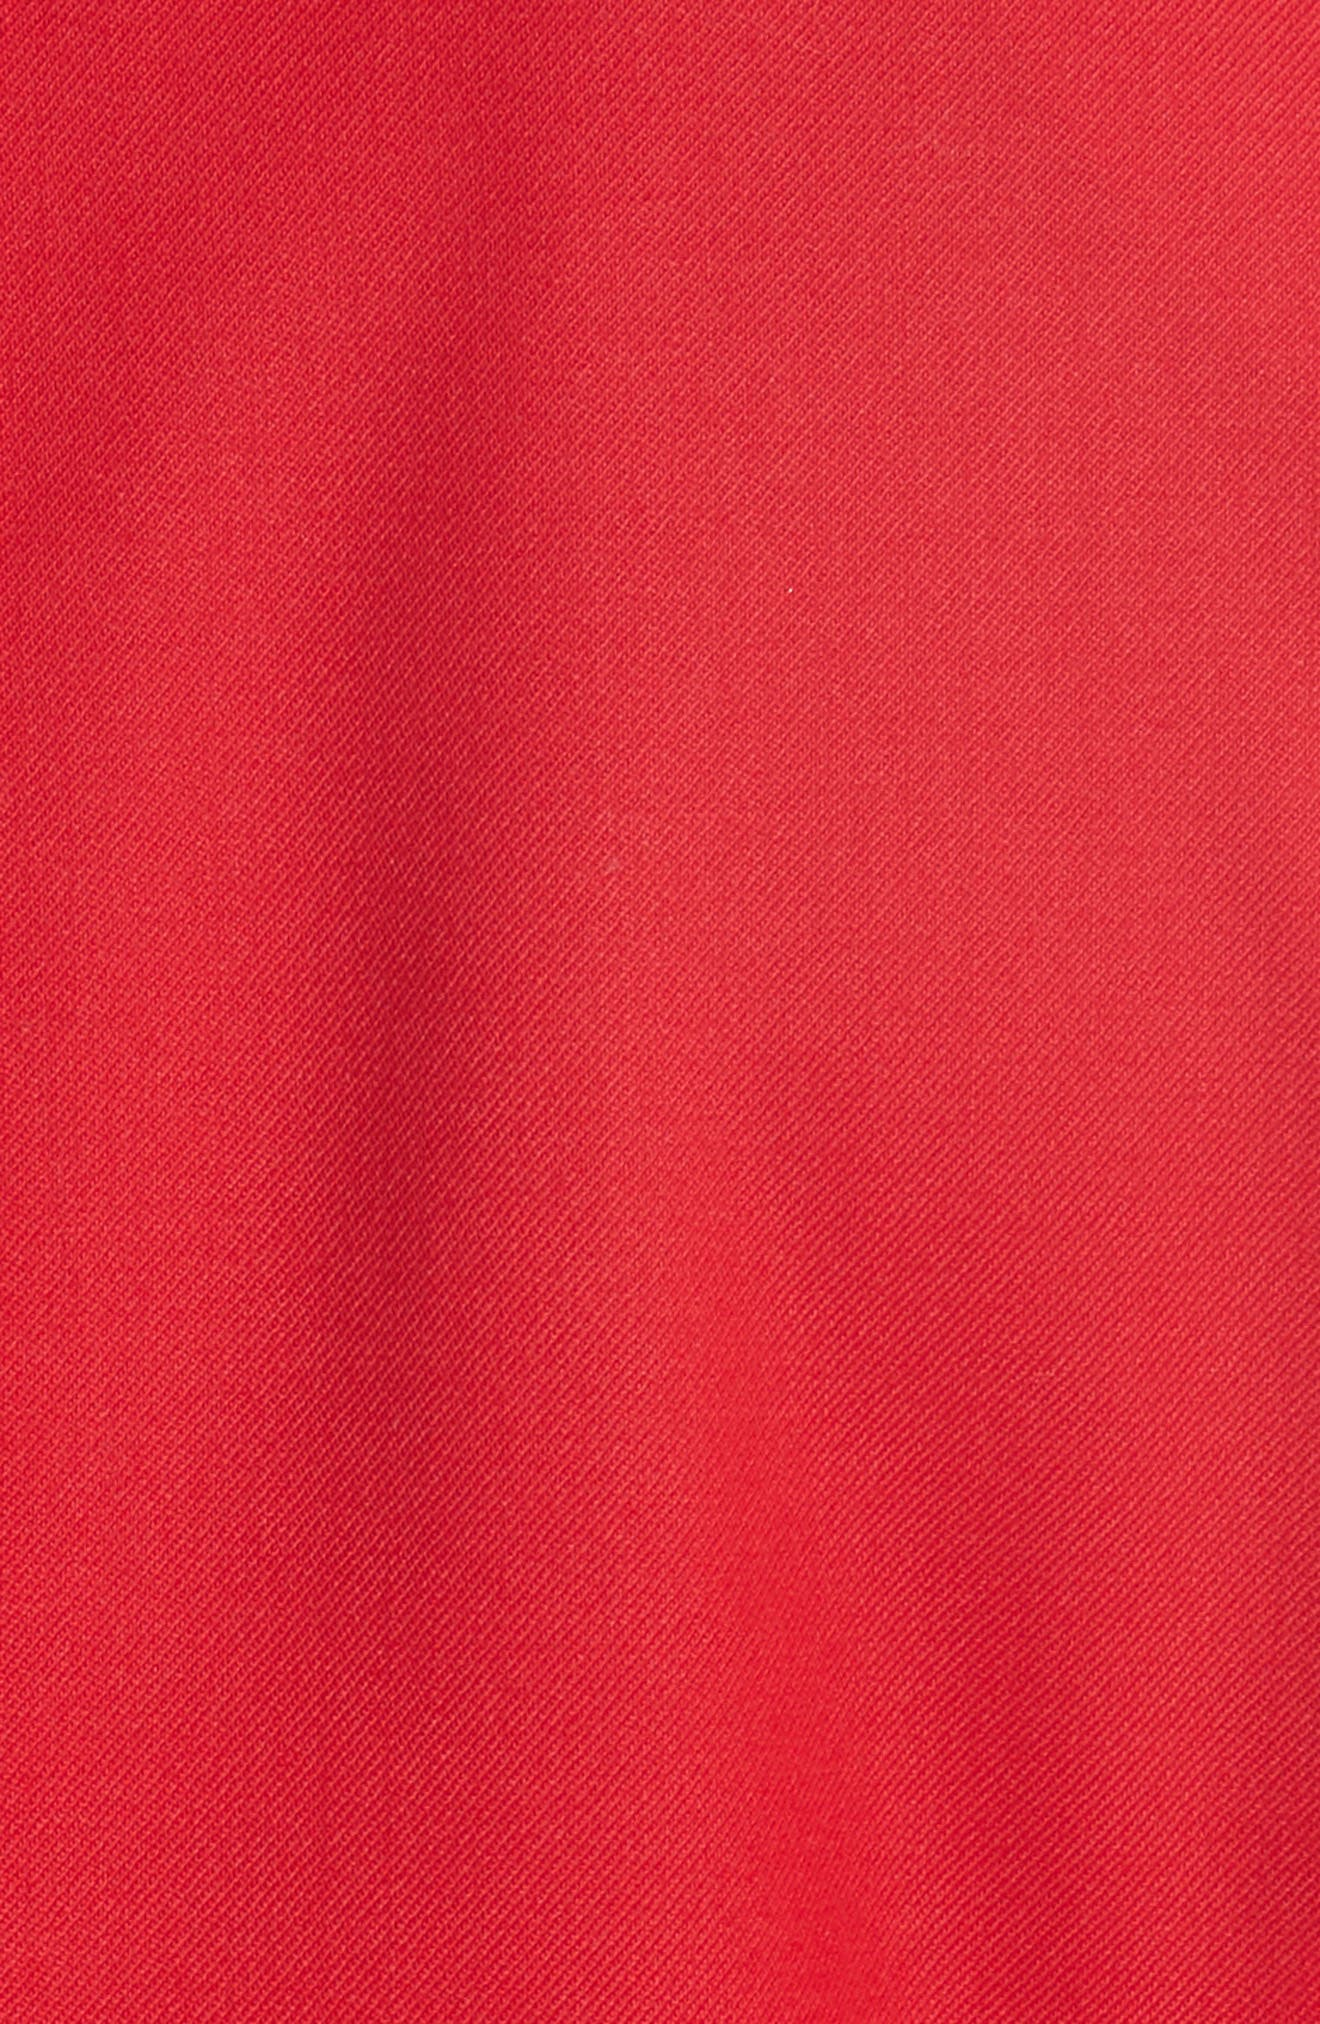 Stretch Wool Blazer,                             Alternate thumbnail 7, color,                             Red